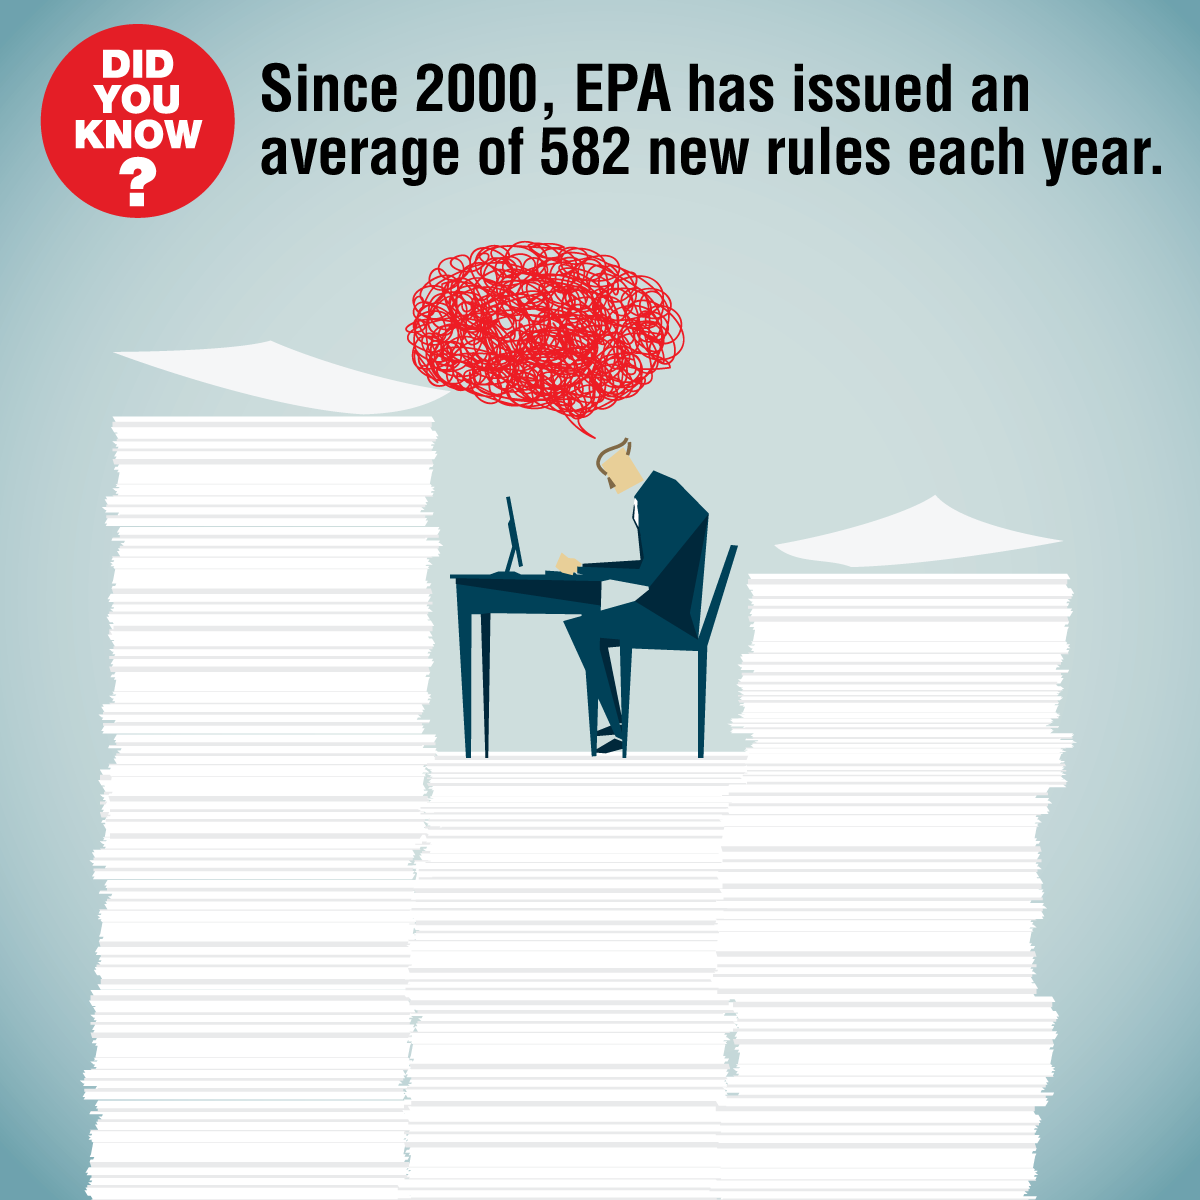 Did you know? Since 2000 EPA has issued an average of 582 new rules each year.